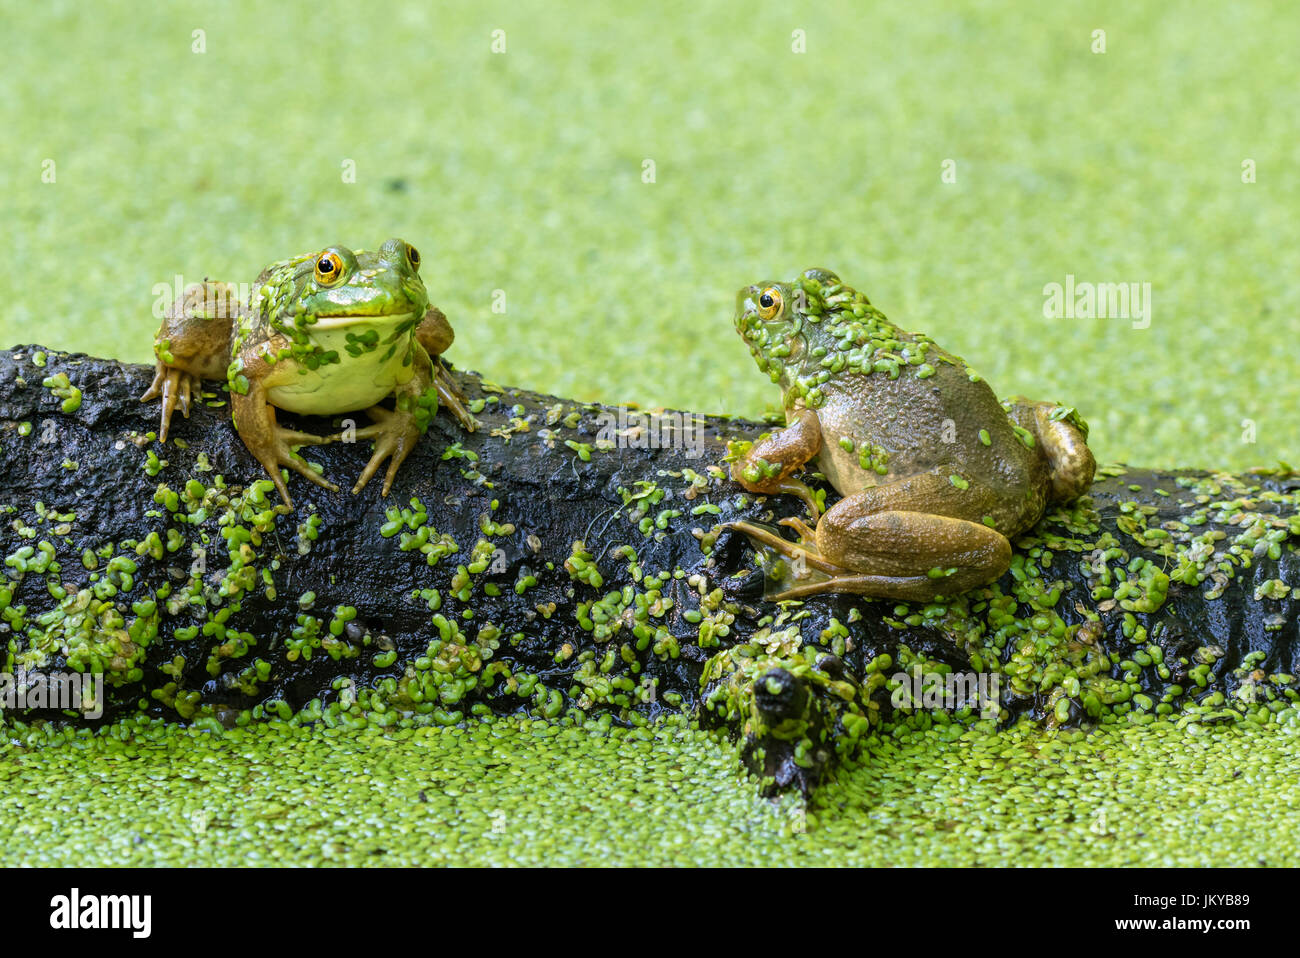 Two American bullfrogs (Lithobates catesbeianus or Rana catesbeiana) seating on rotten wood in a lake covered by - Stock Image